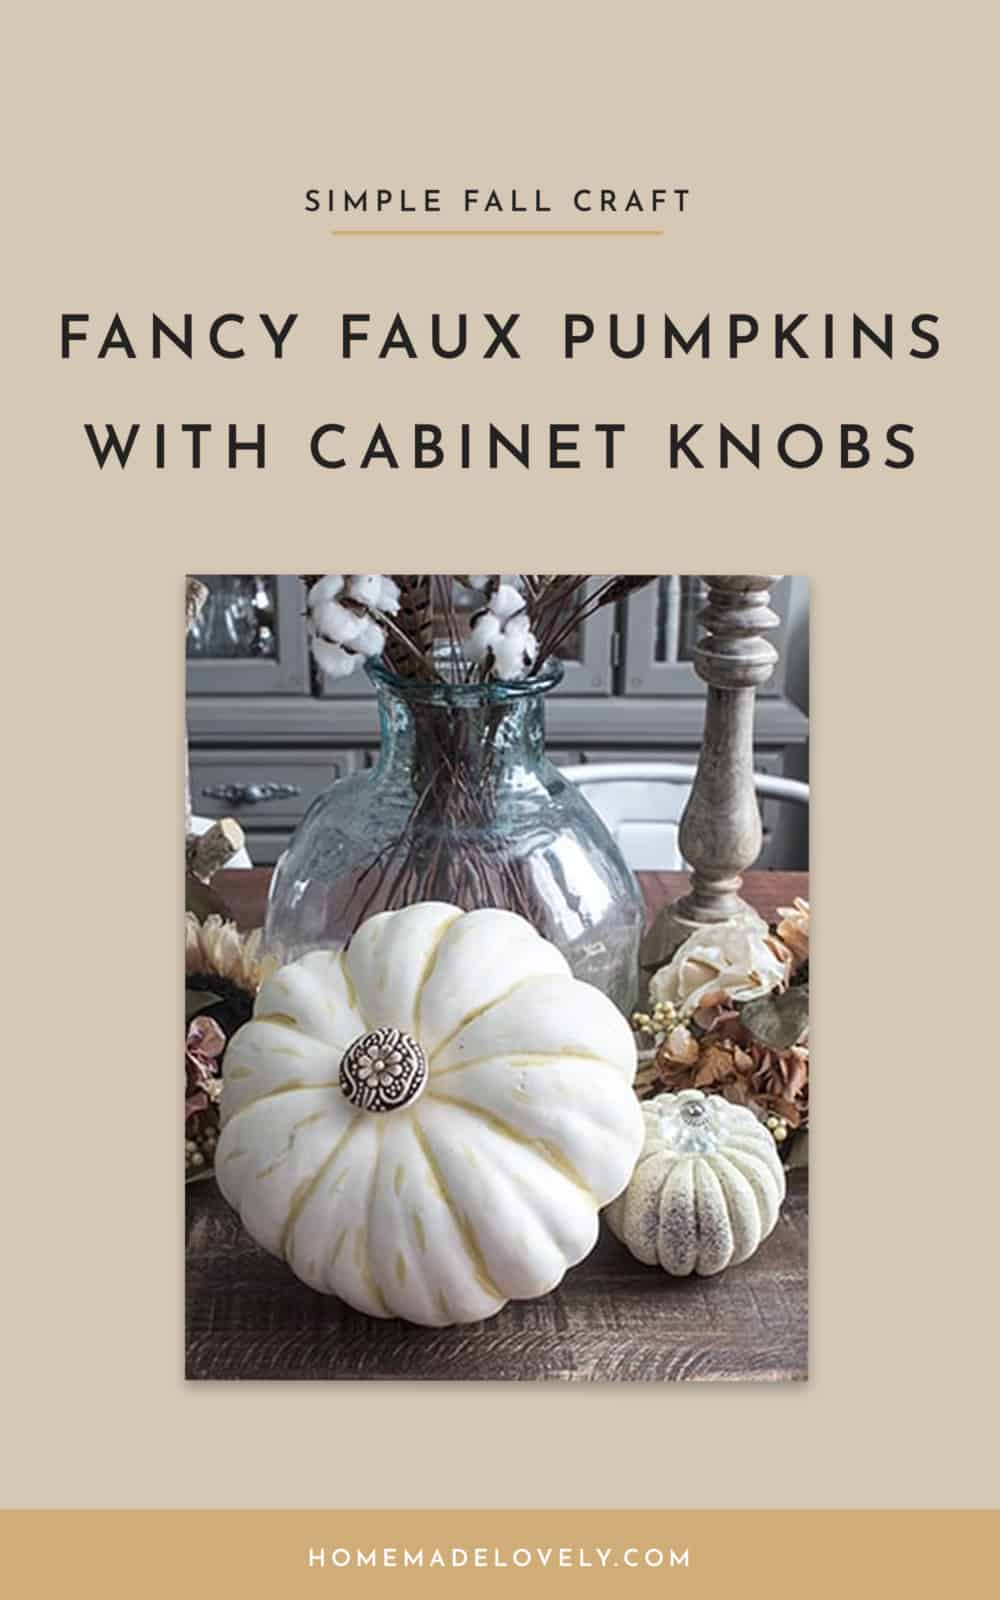 fancy faux pumpkins with knobs text and photo of pumpkins